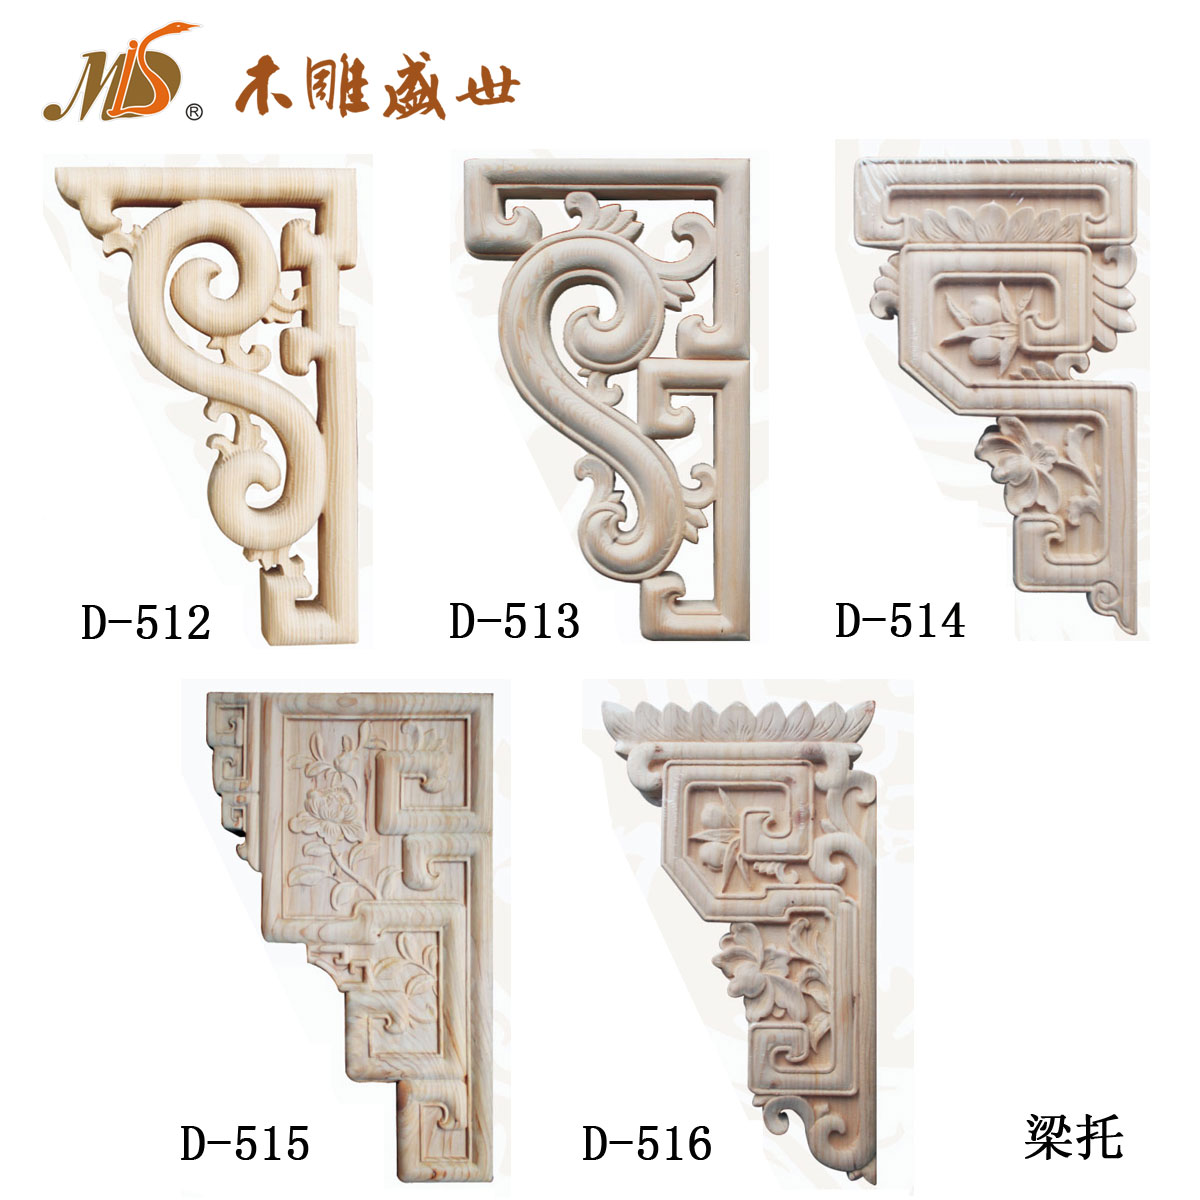 nifty types f countertops brackets and styles depot support granite decor for inspiring concept representation pict decorative to countertop corbels dreamy home unbelievable